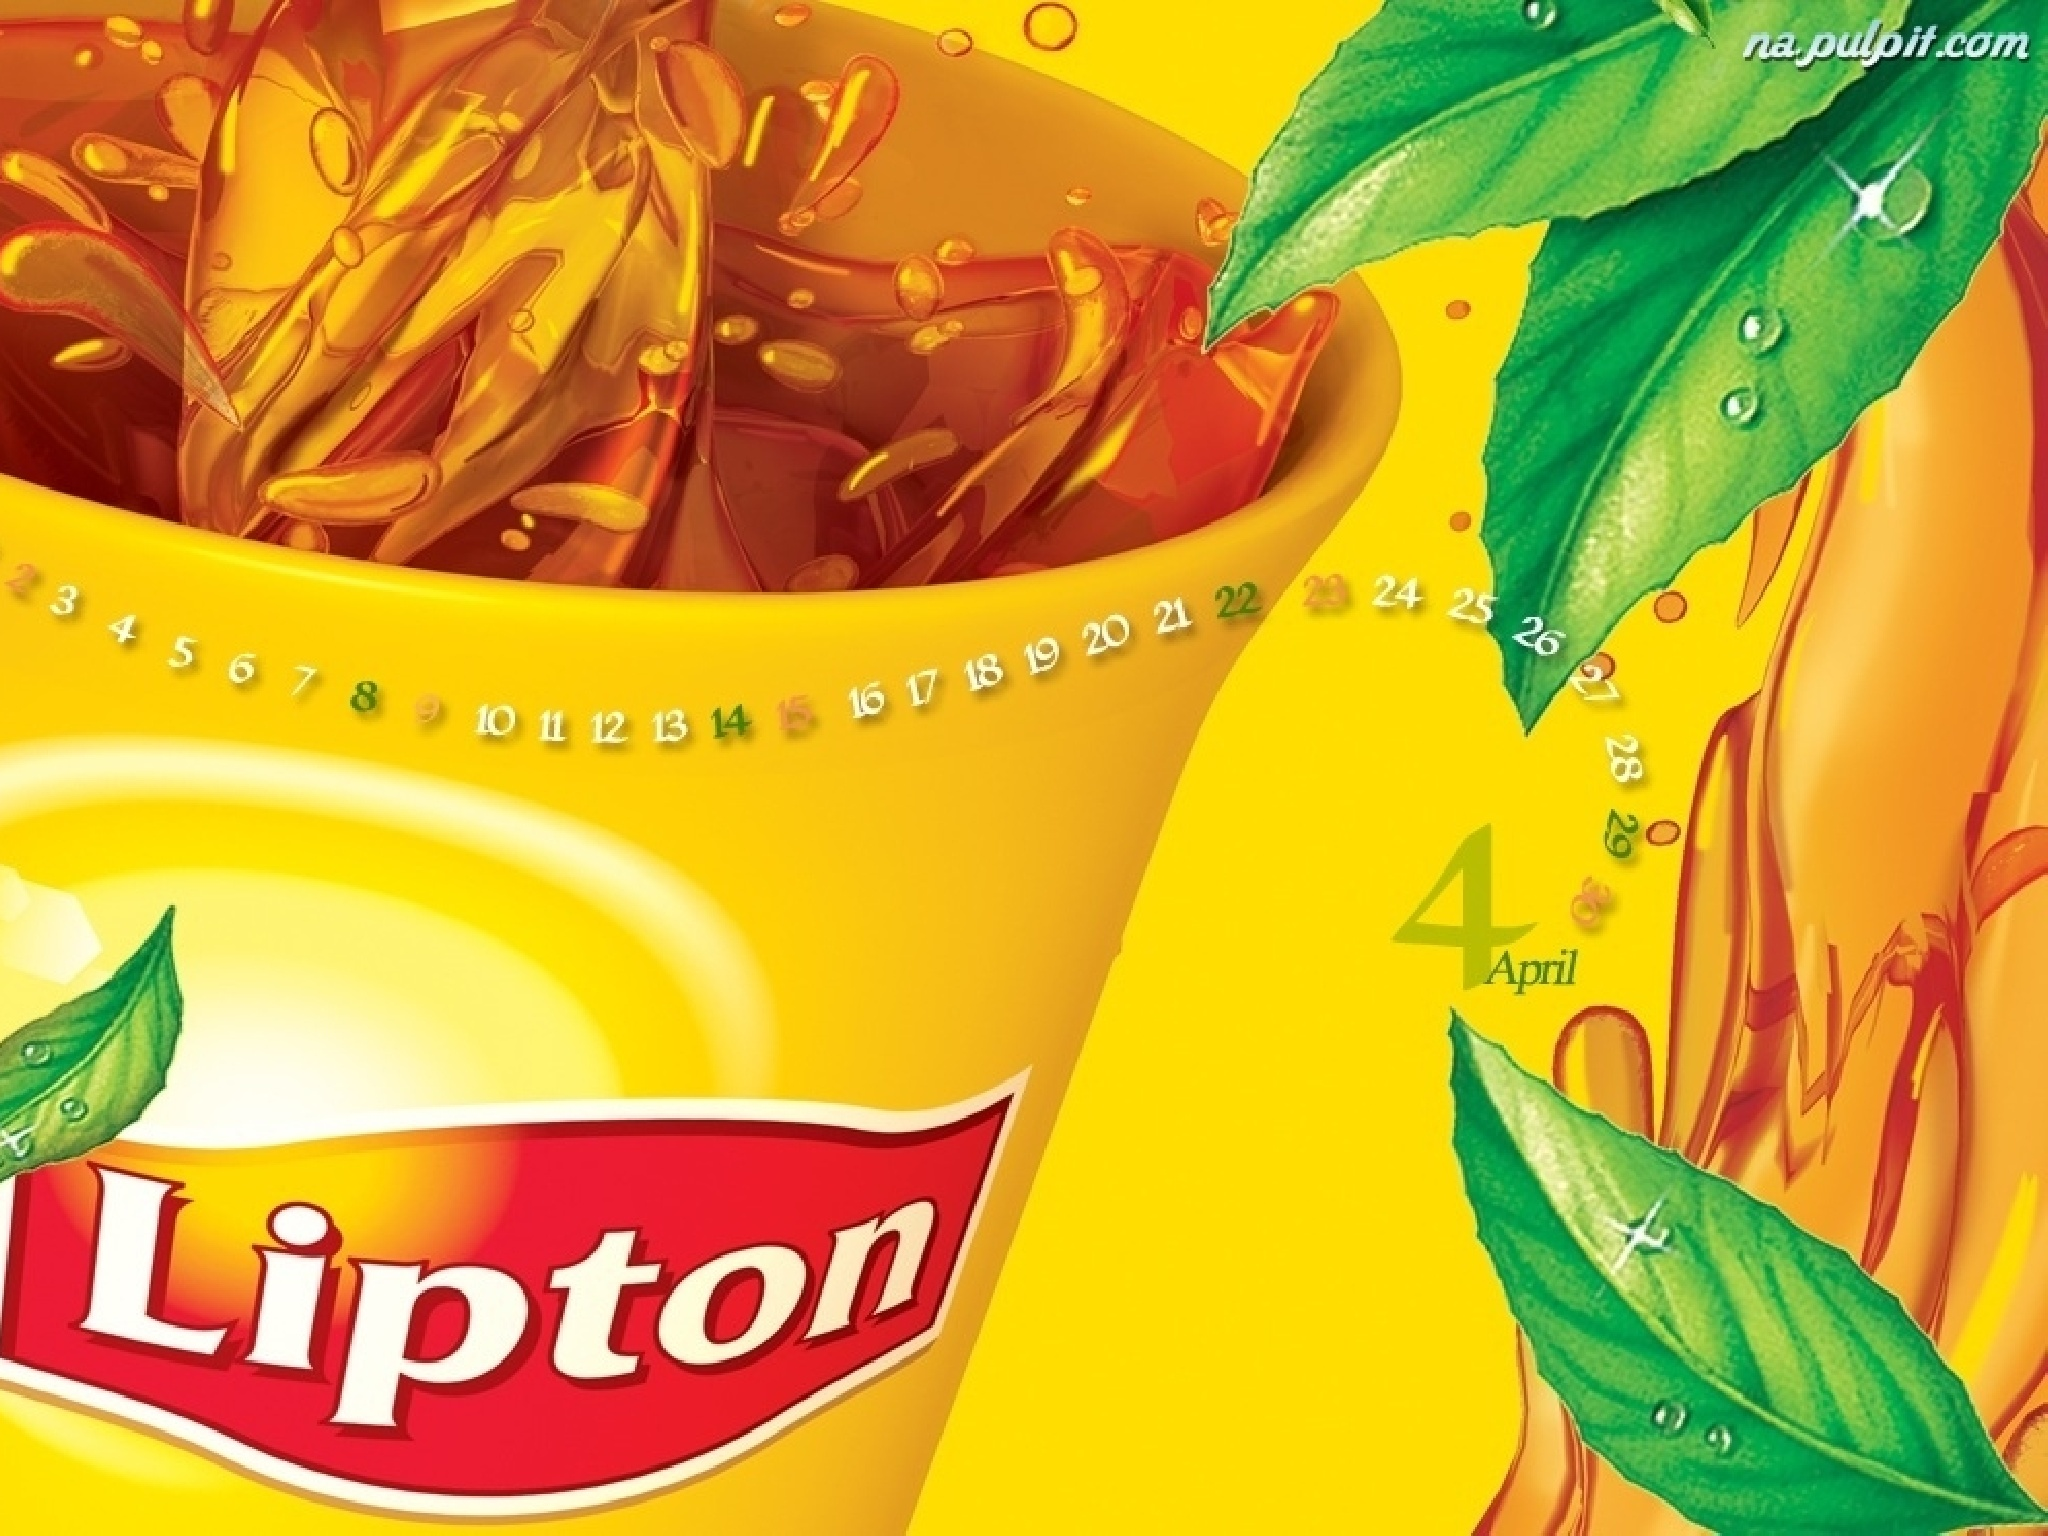 Top 5 Tea Brands in India- Lipton